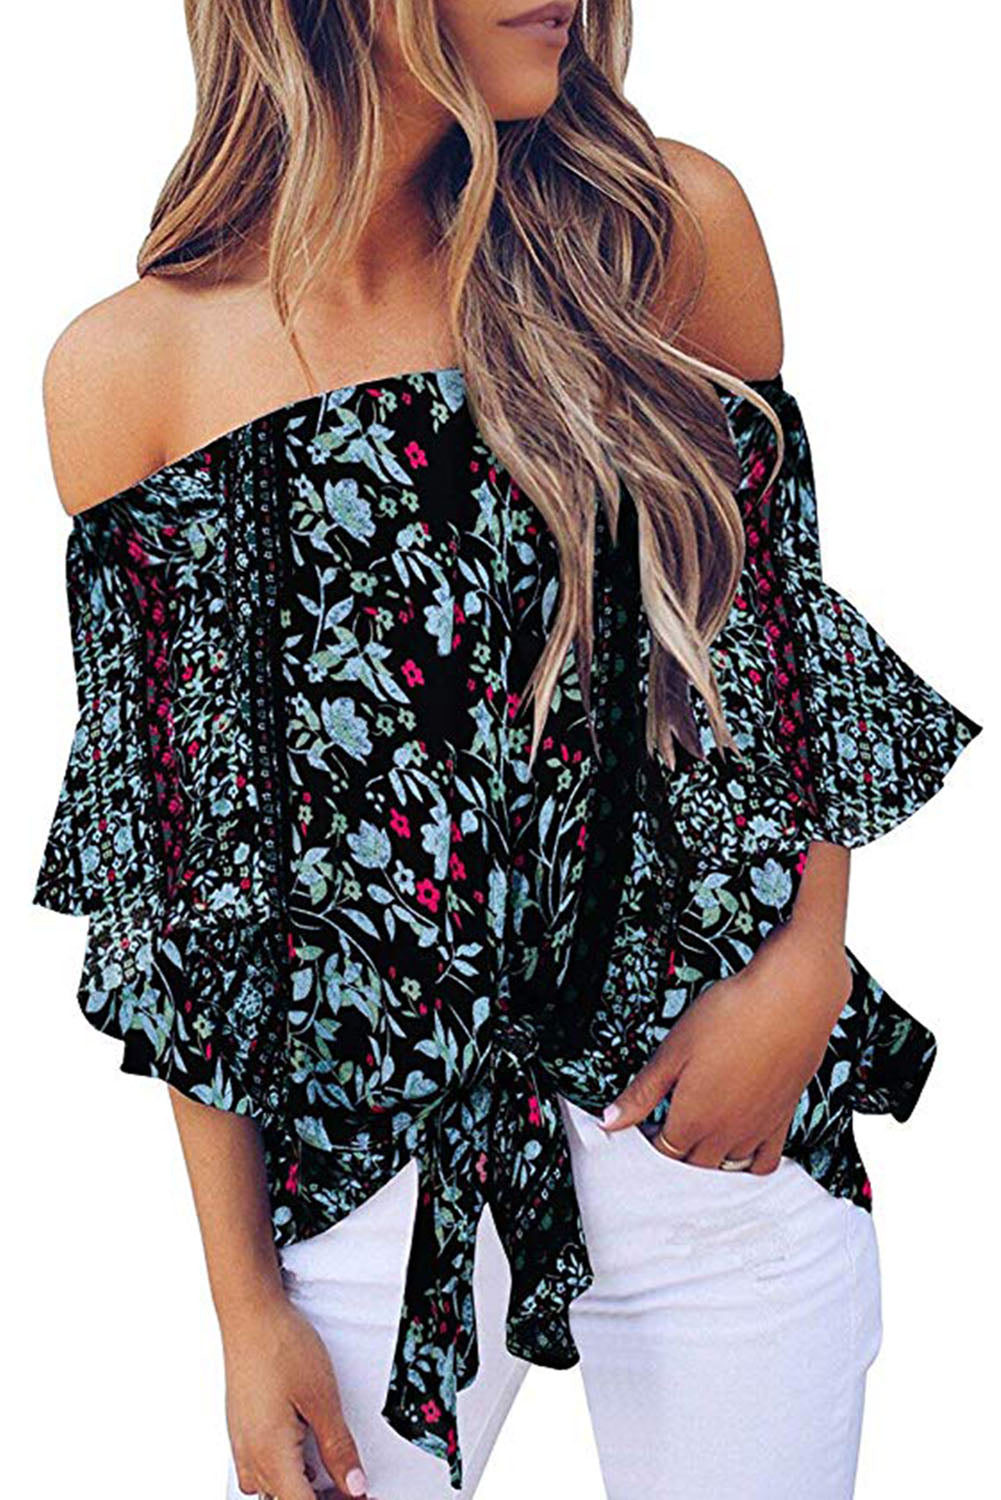 80ced13eb568b5 Black Off Shoulder Floral Tie Front High Low Chiffon Blouse - Lady ...